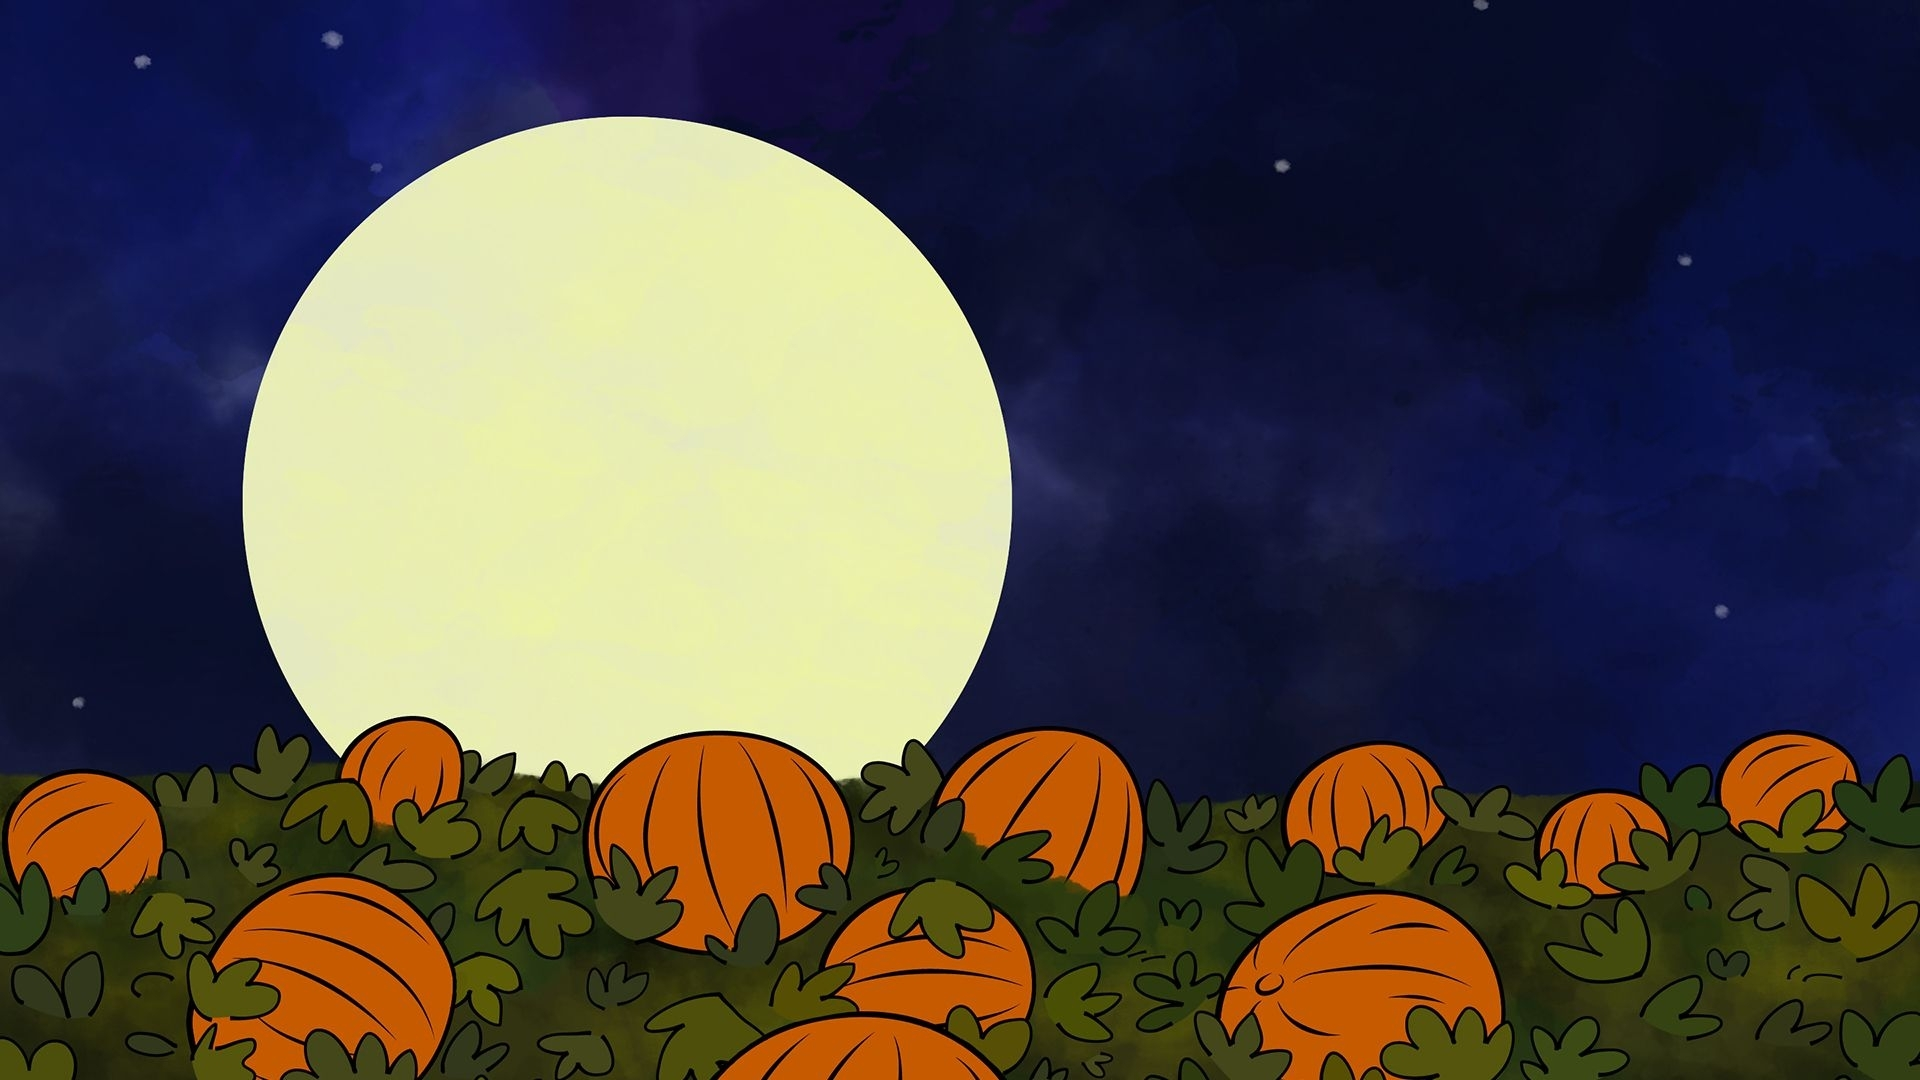 great-pumpkin-charlie-brown-wallpapers - wallpaper.wiki